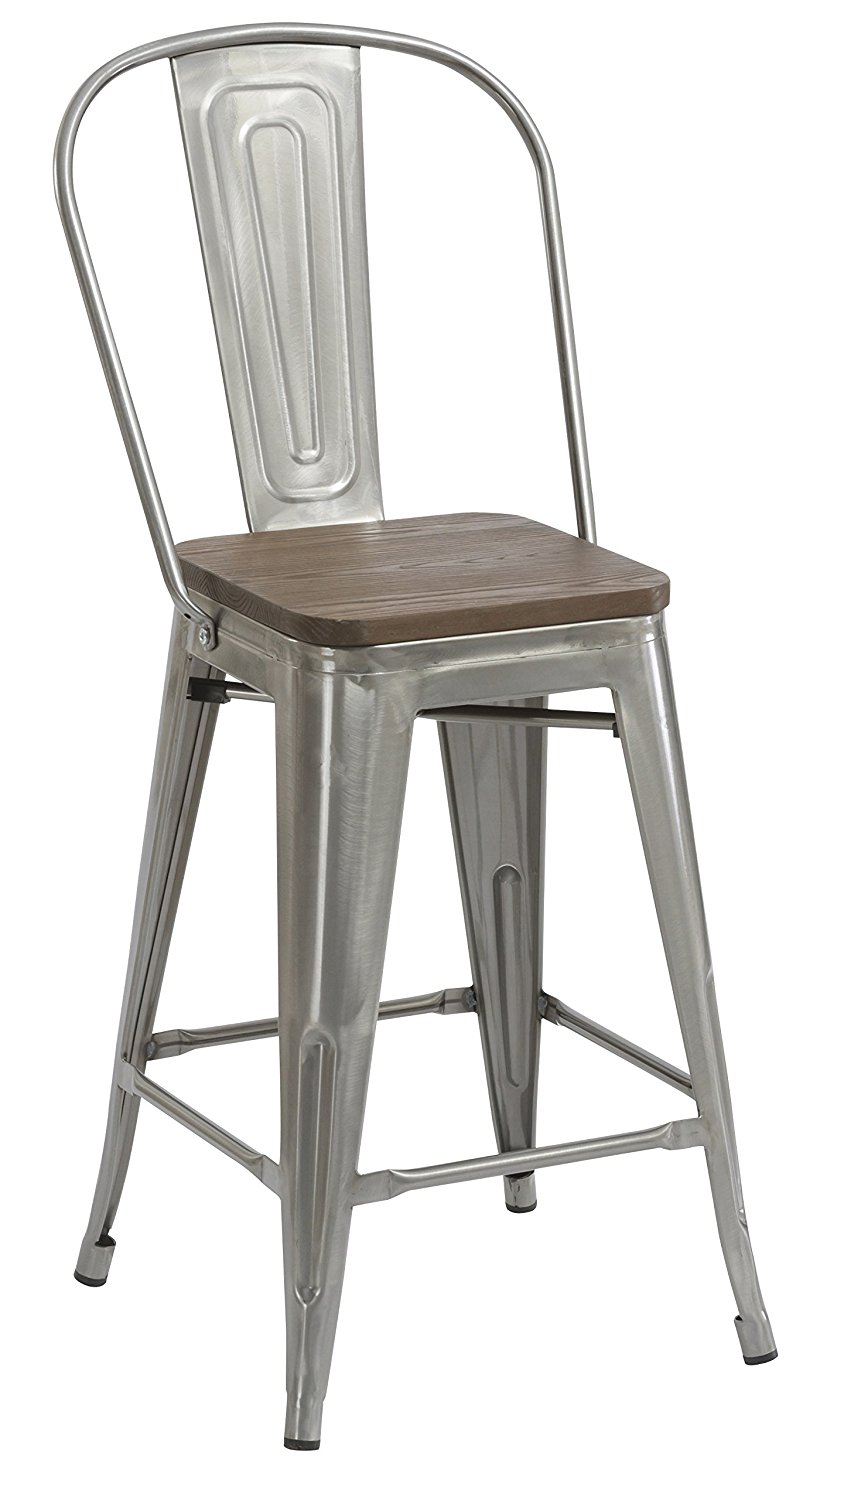 24quotquotBar Stool Chair High Back Handmade Wood top seatSet  : 71hCmduXGXLSL1500 from www.btexpert.com size 844 x 1500 jpeg 107kB